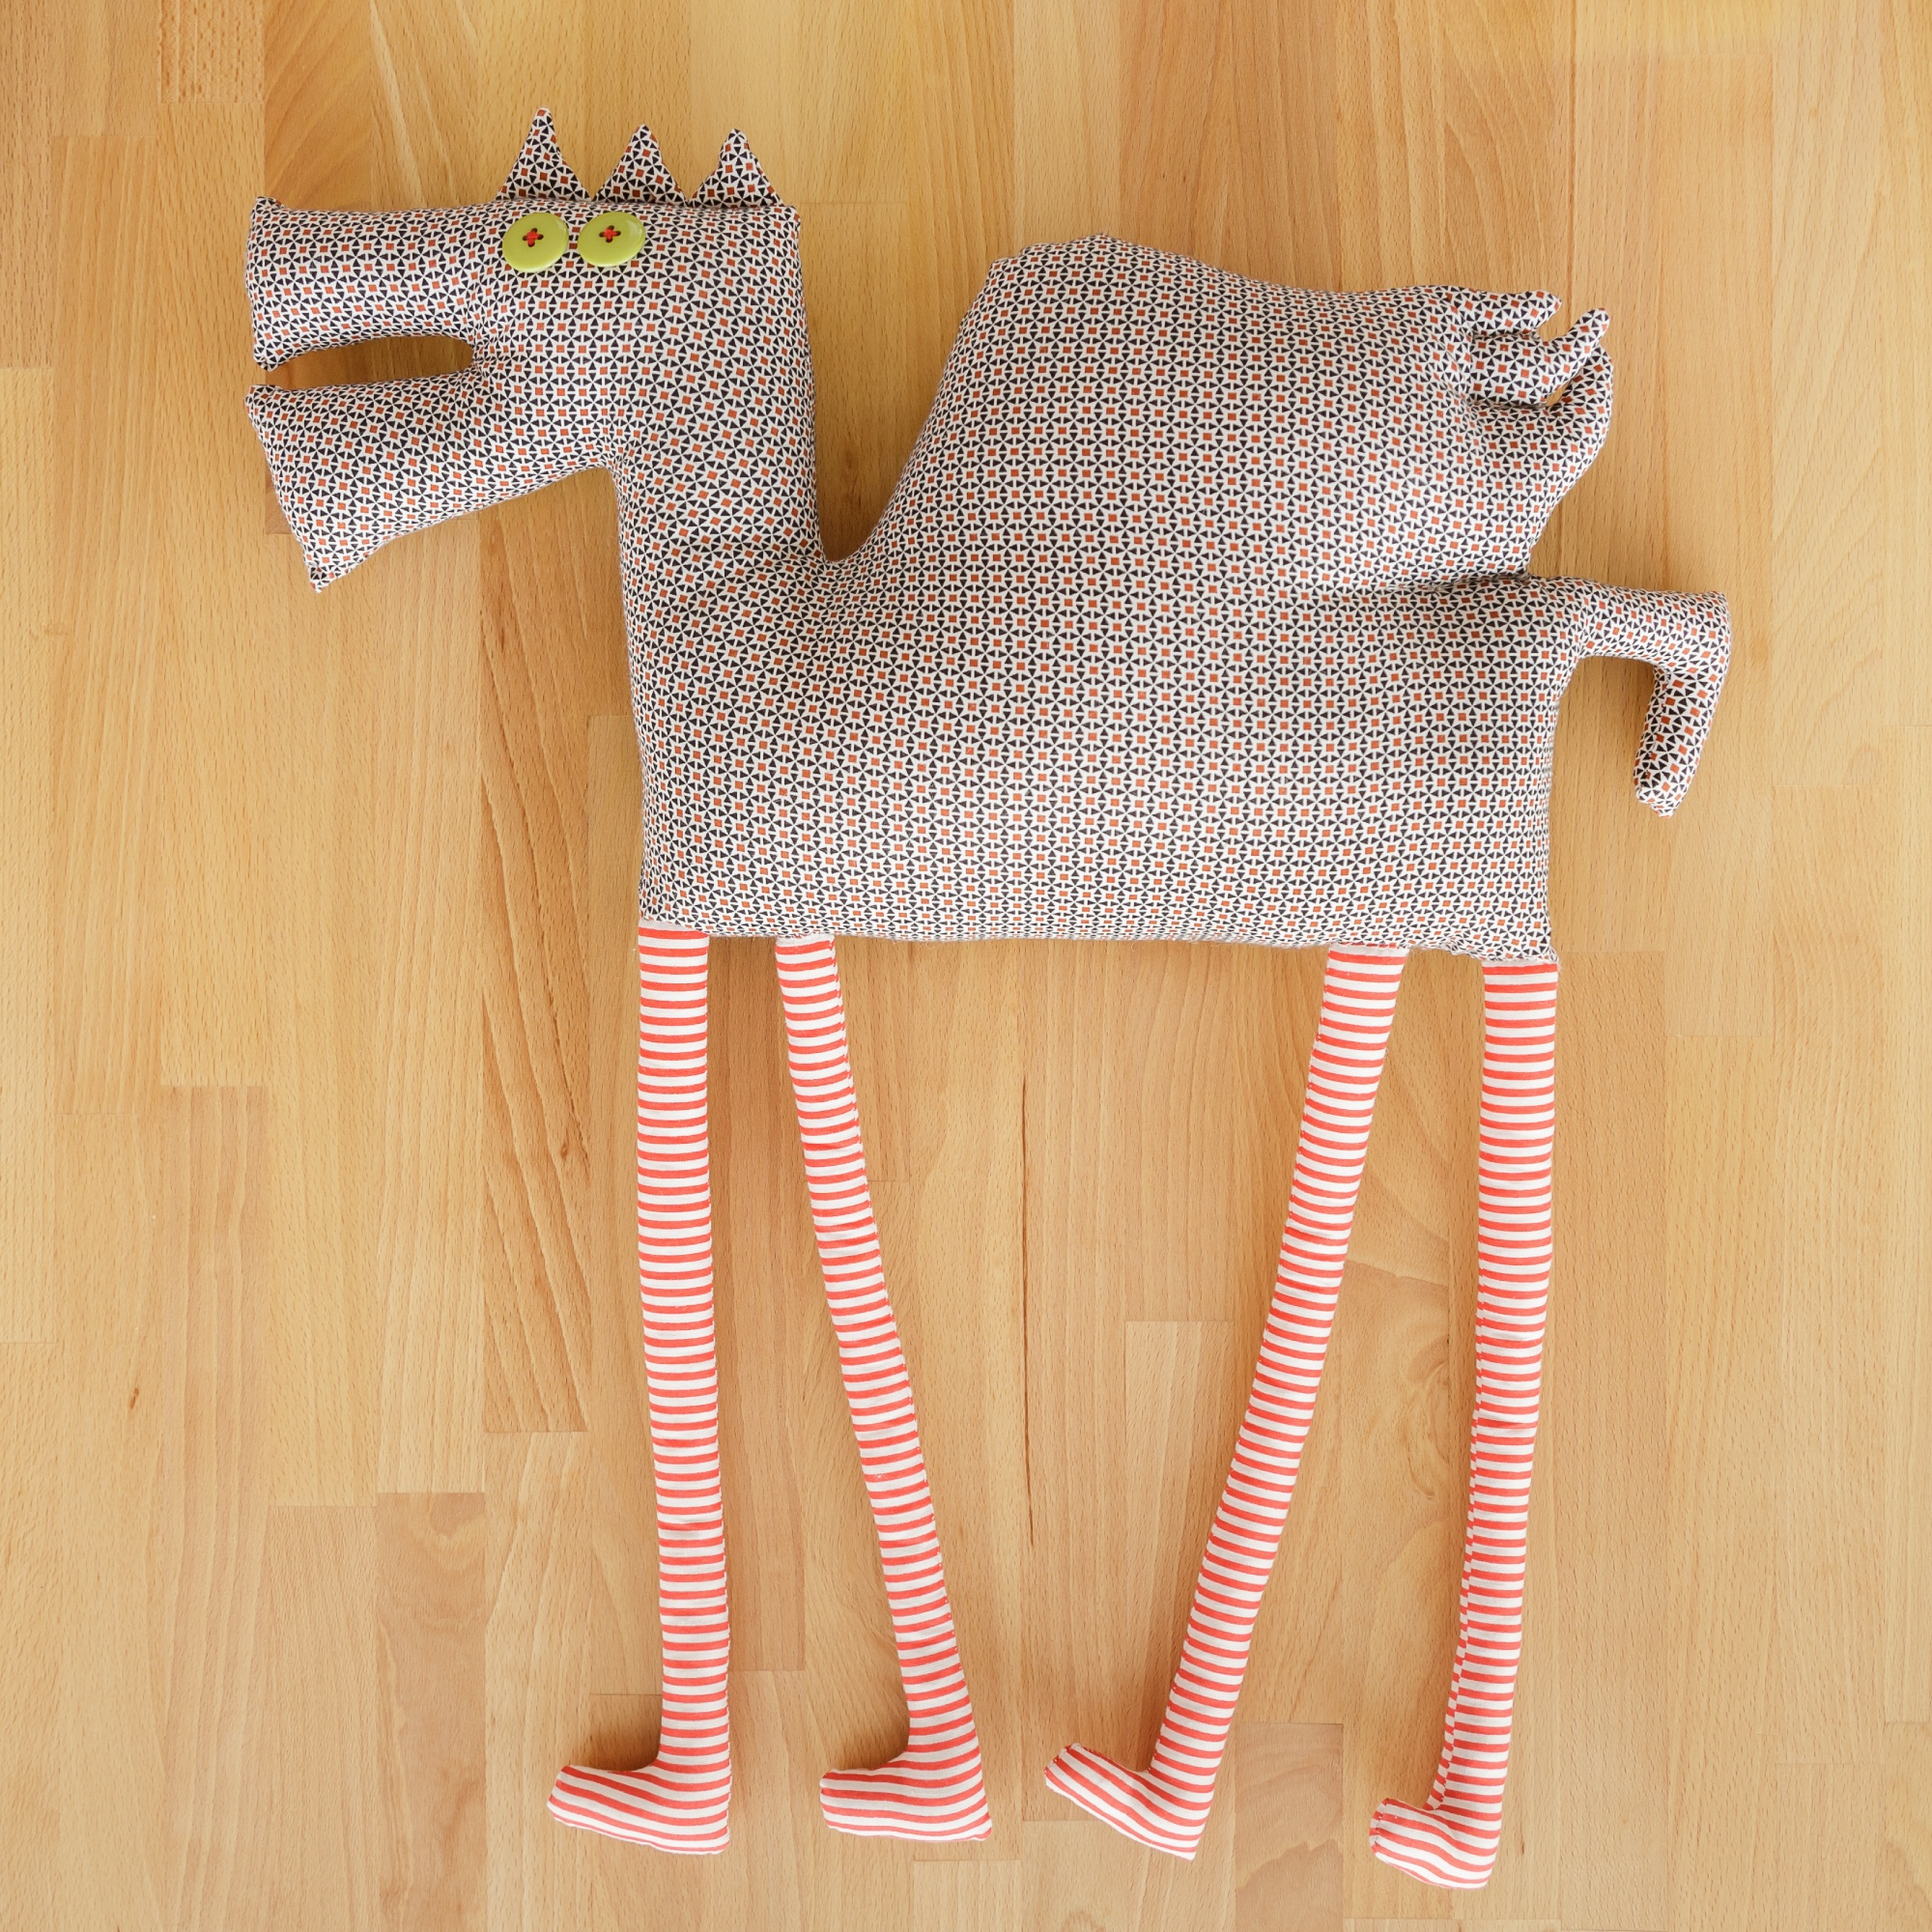 So Cal Clothing >> Teenage Winged Horse, textile toy - Textile toys - Gifts